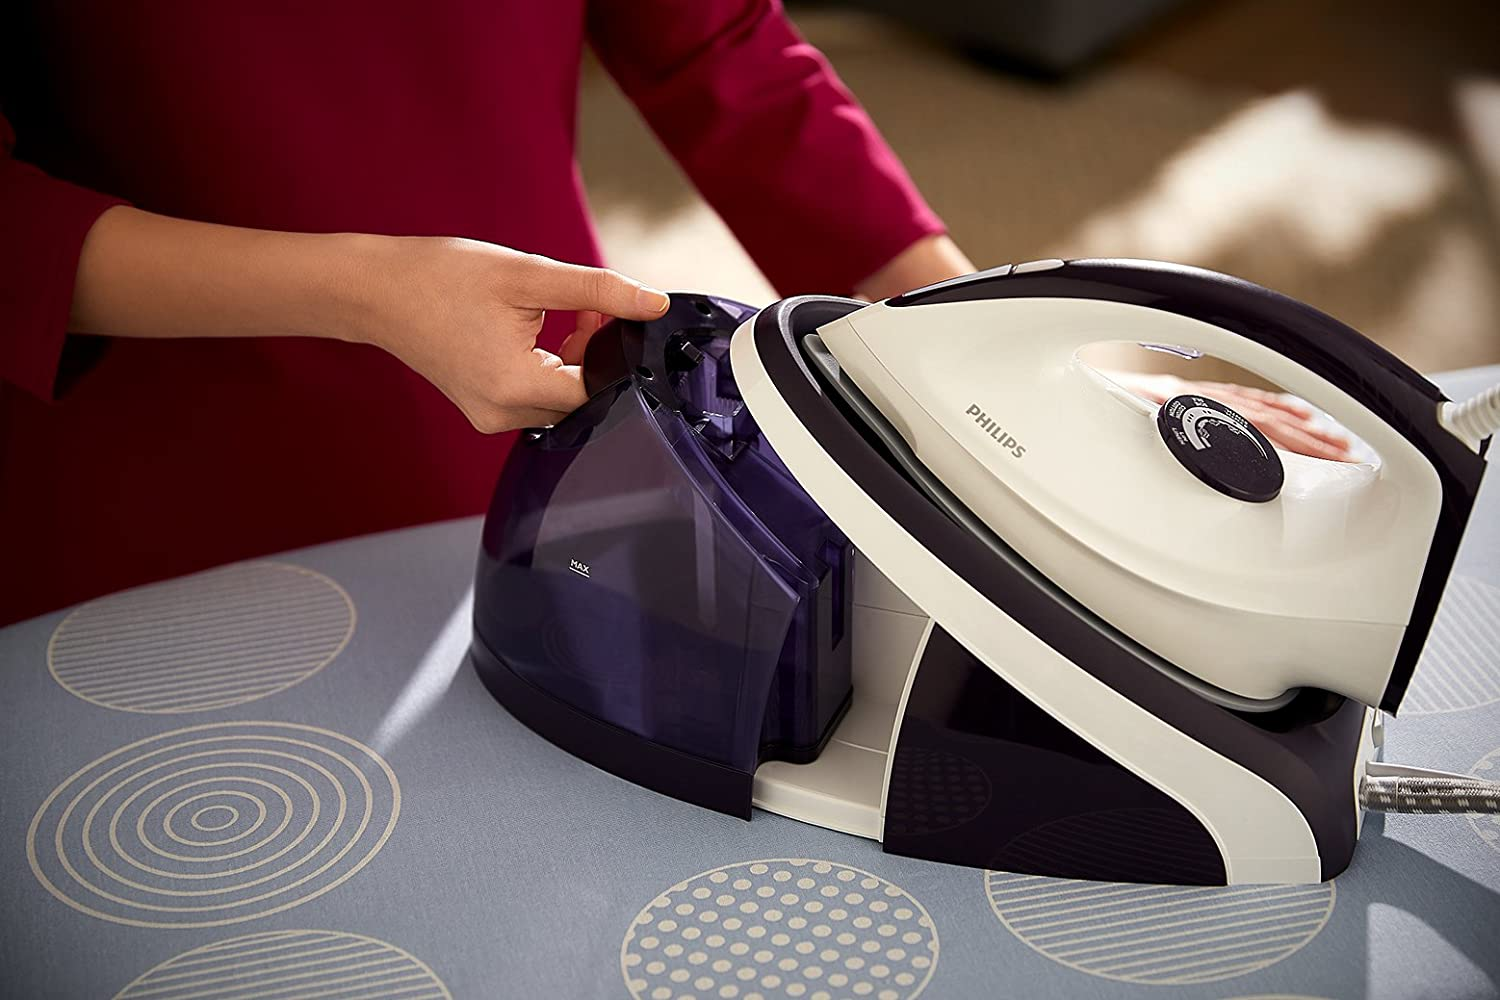 Philips HI5914//36 2400W 1.1L Compact Steam Generator Iron Purple.